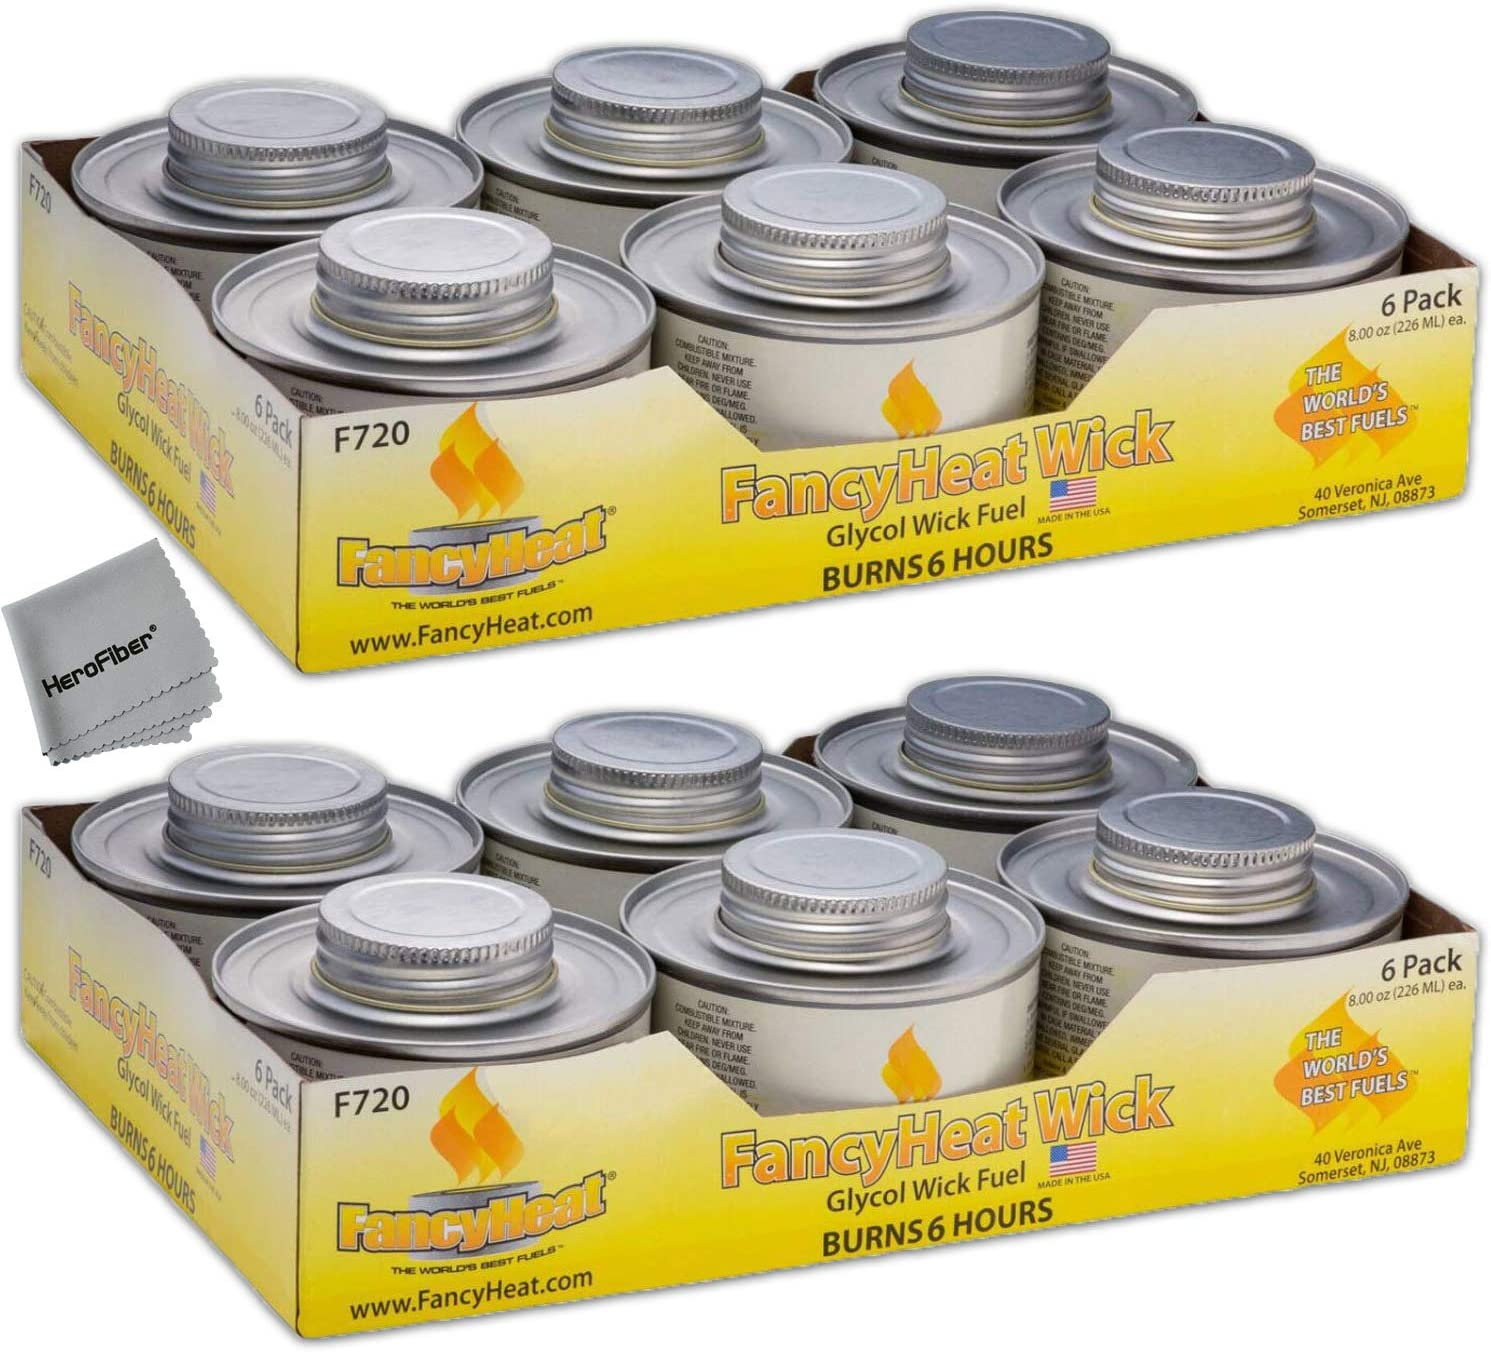 Chafing Dish Fuel Cans – Includes 12 Wick Candle Chafing Fuels, Burns for 6 Hours (8.0 OZ) for your Cooking, Food Warming, Buffet and Parties.